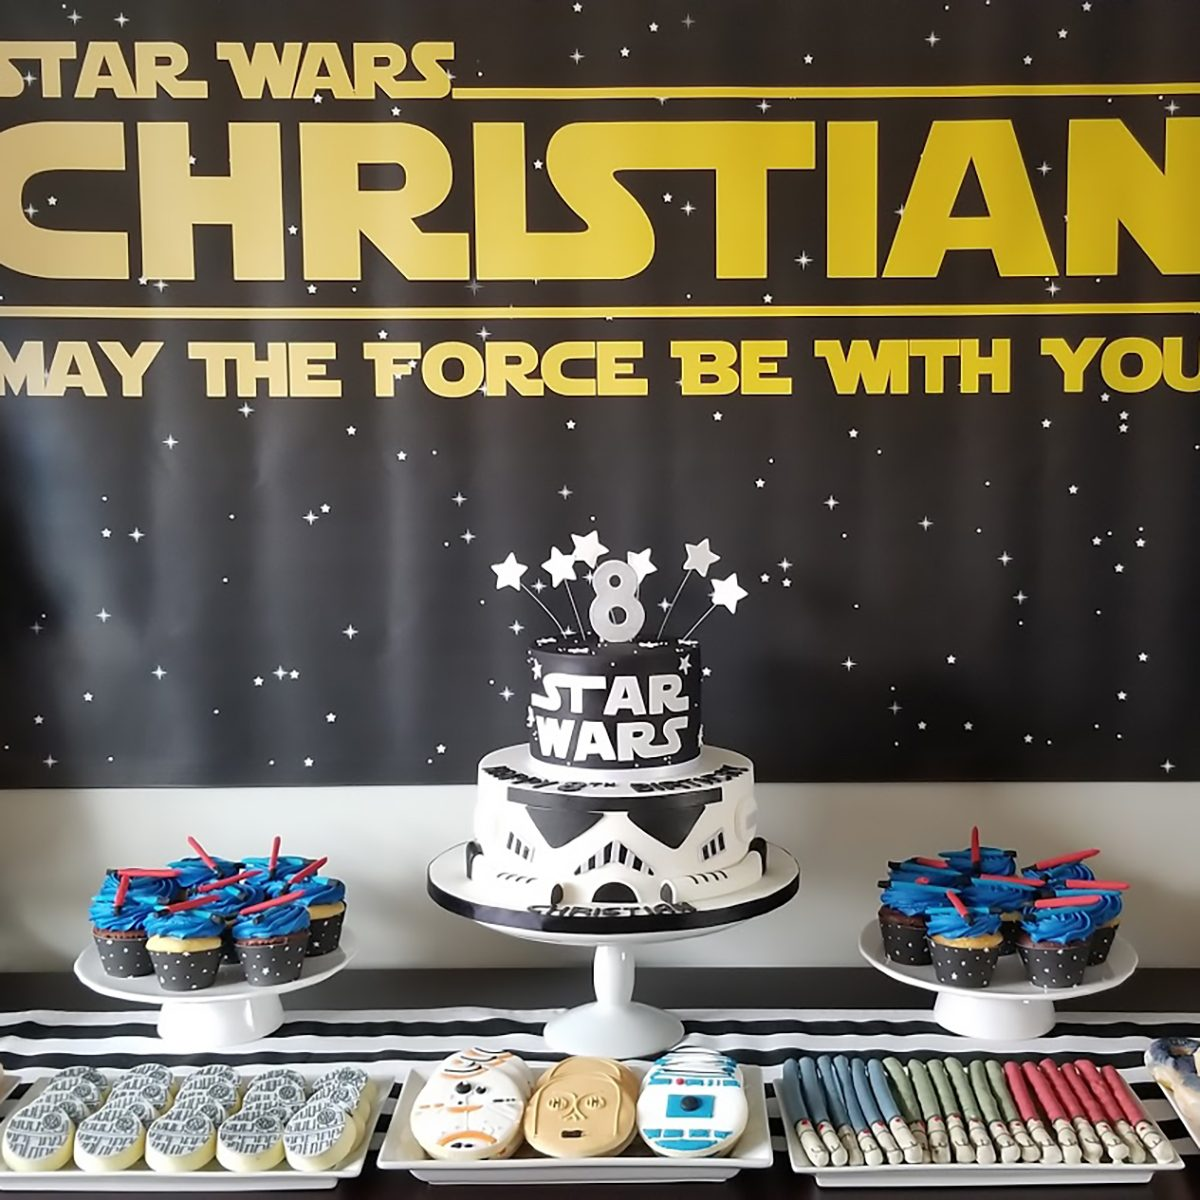 Star Wars Birthday Party desert table idea